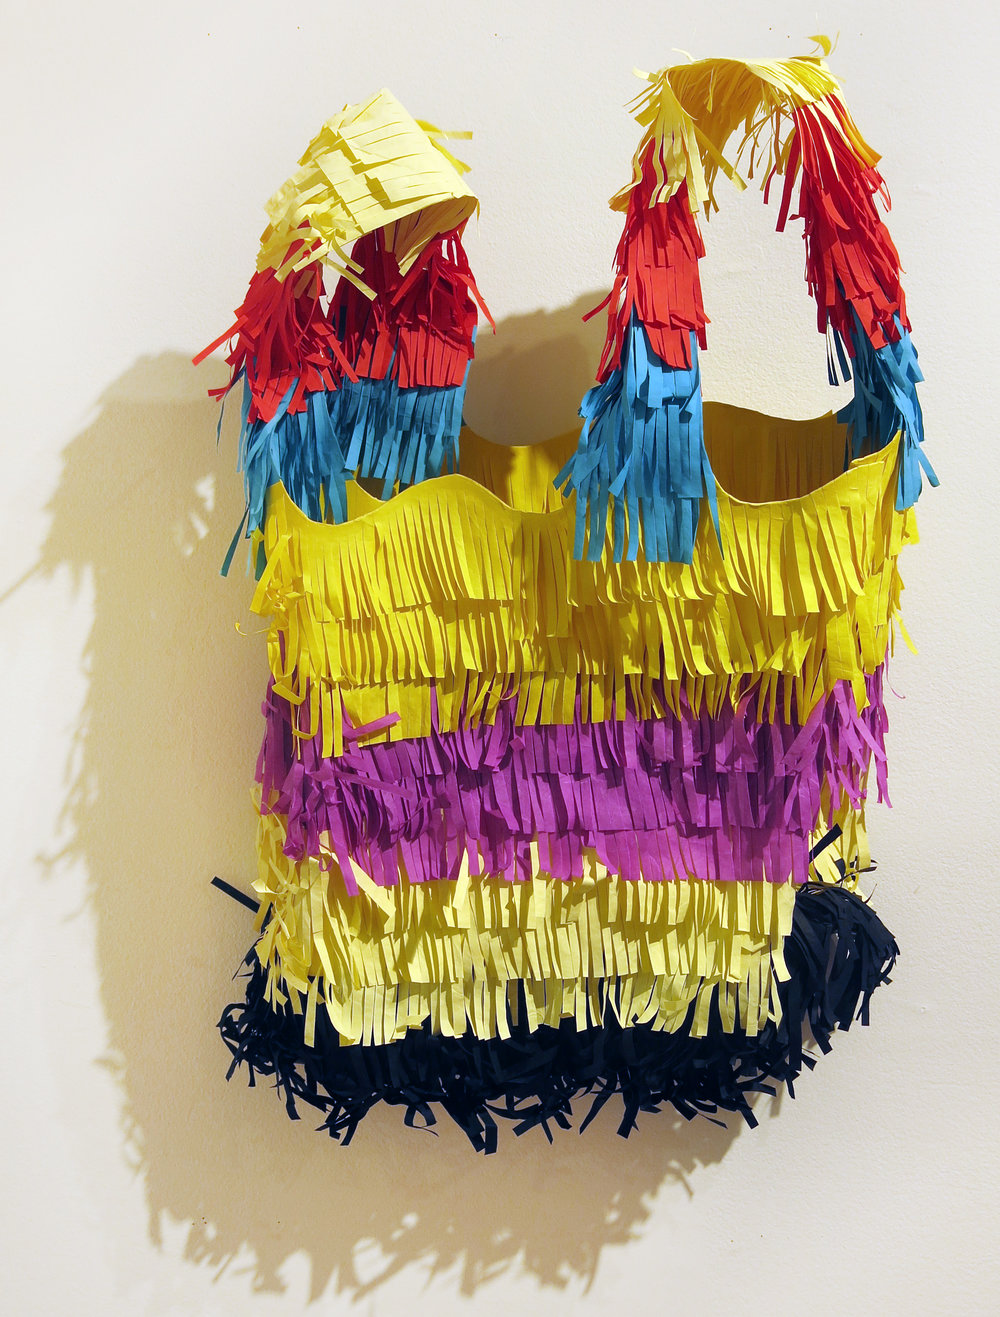 Billy Copley,  Large Piñata Bag (in Honor of Mexican Immigrant Appreciation Day),  2016, hand painted paper collage on formed paper, 23h x 18w x 10d in.